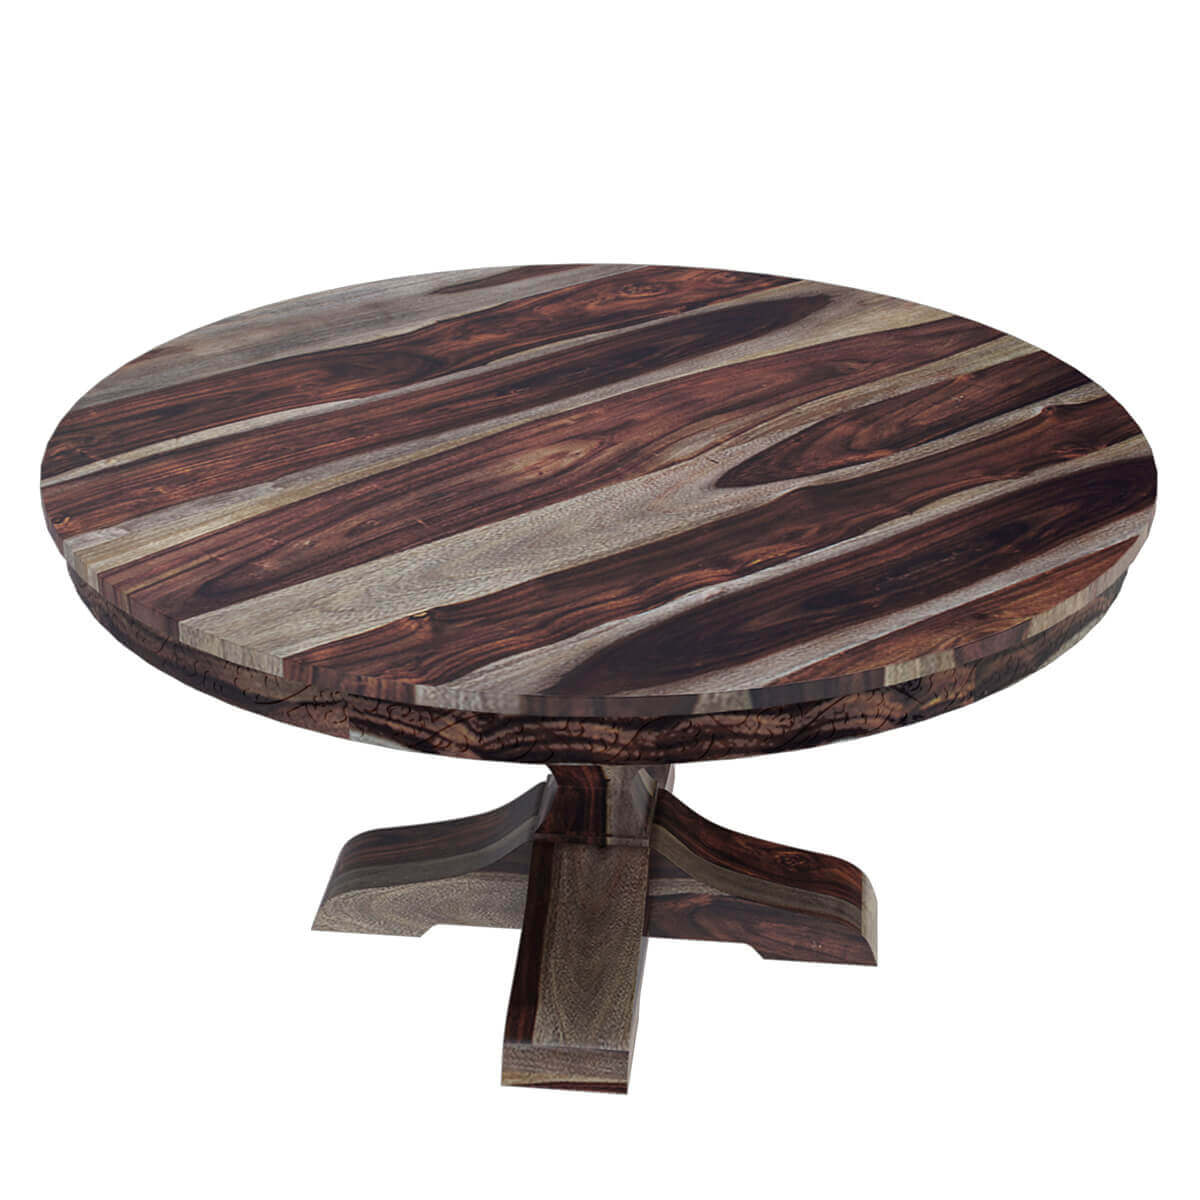 Brown dallas solid wood 60 round pedestal dining table - Round timber dining table ...